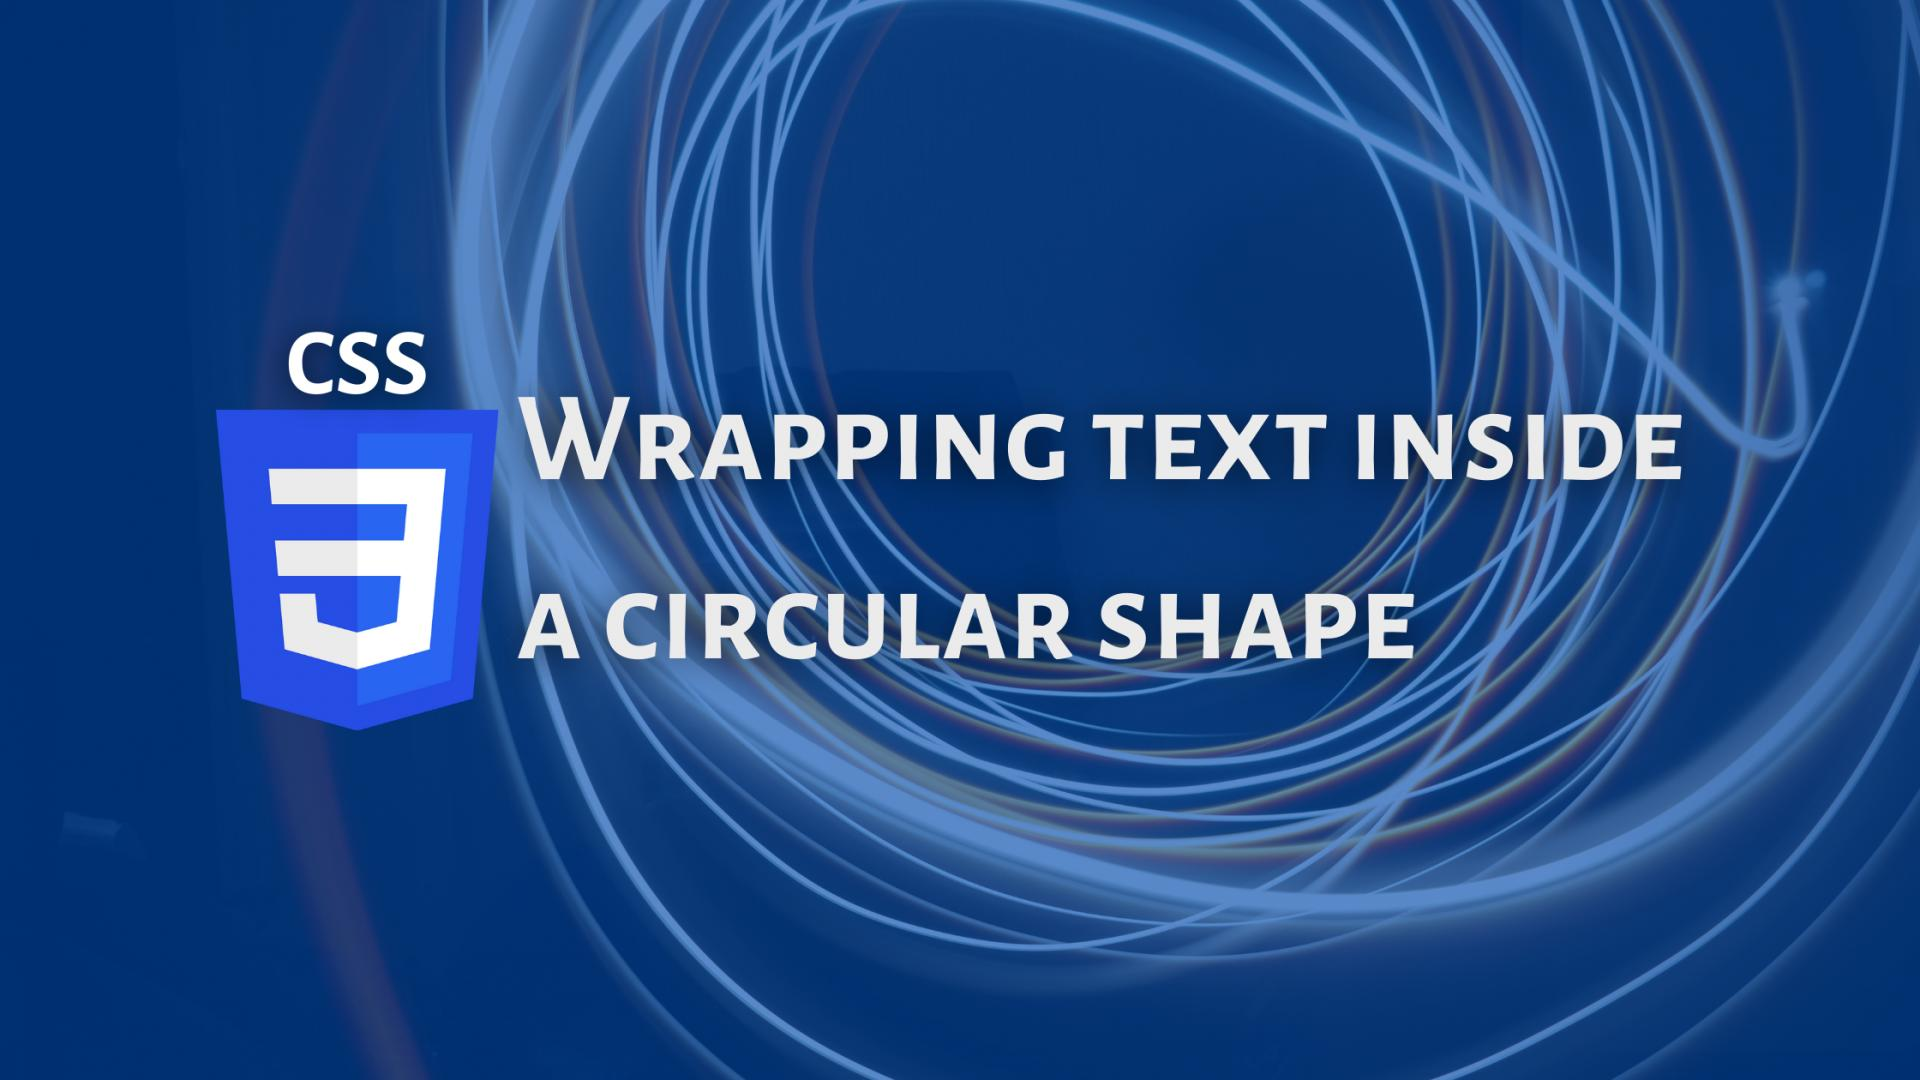 Wrapping text inside a circular shape